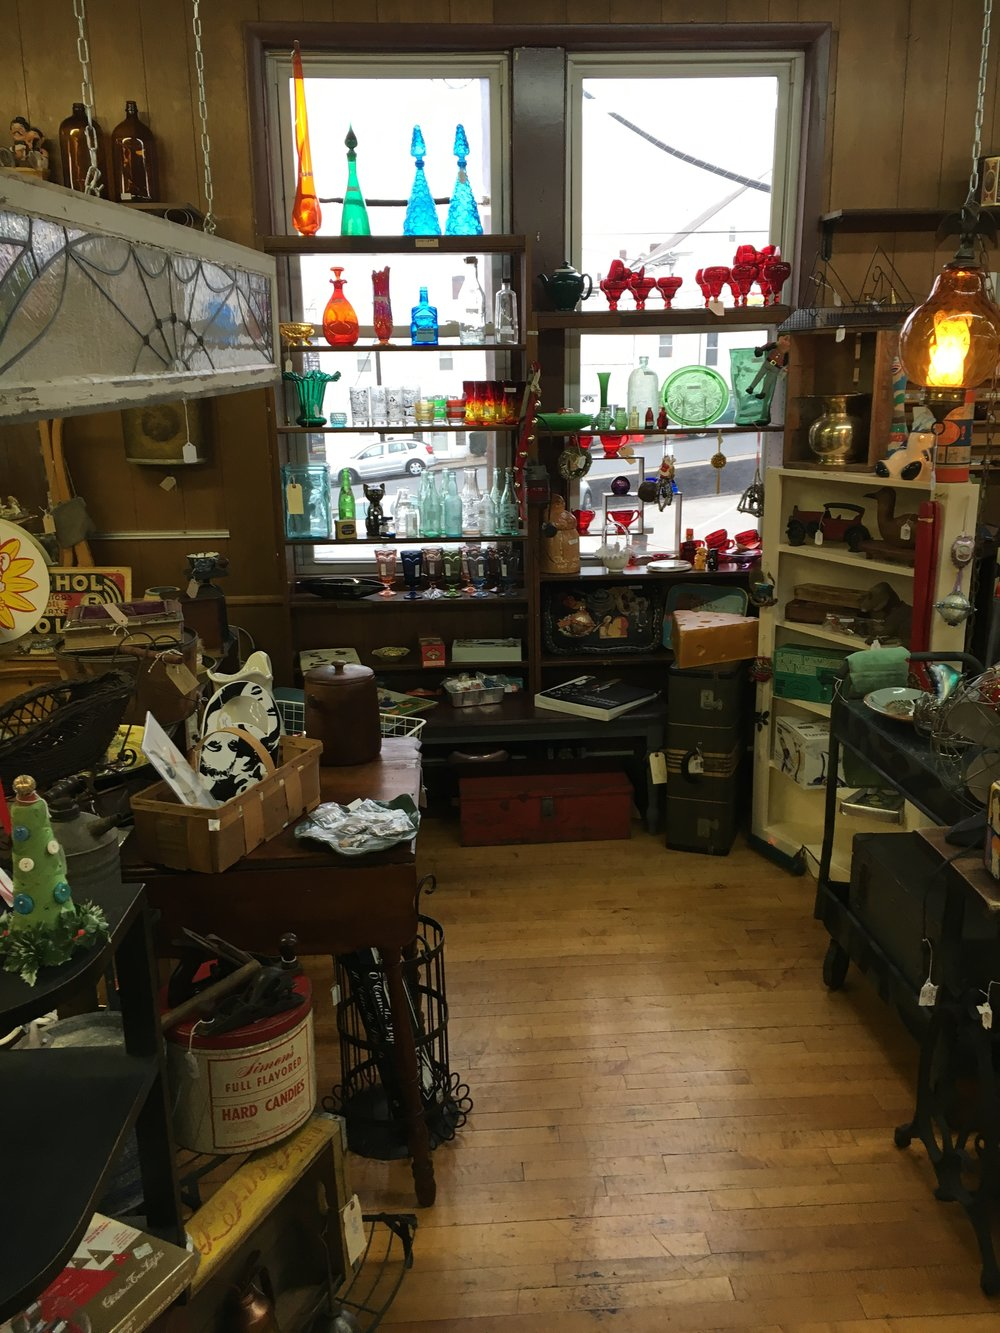 Back Porch Antiques and Collections - Mid century 50's, retro, steampunk